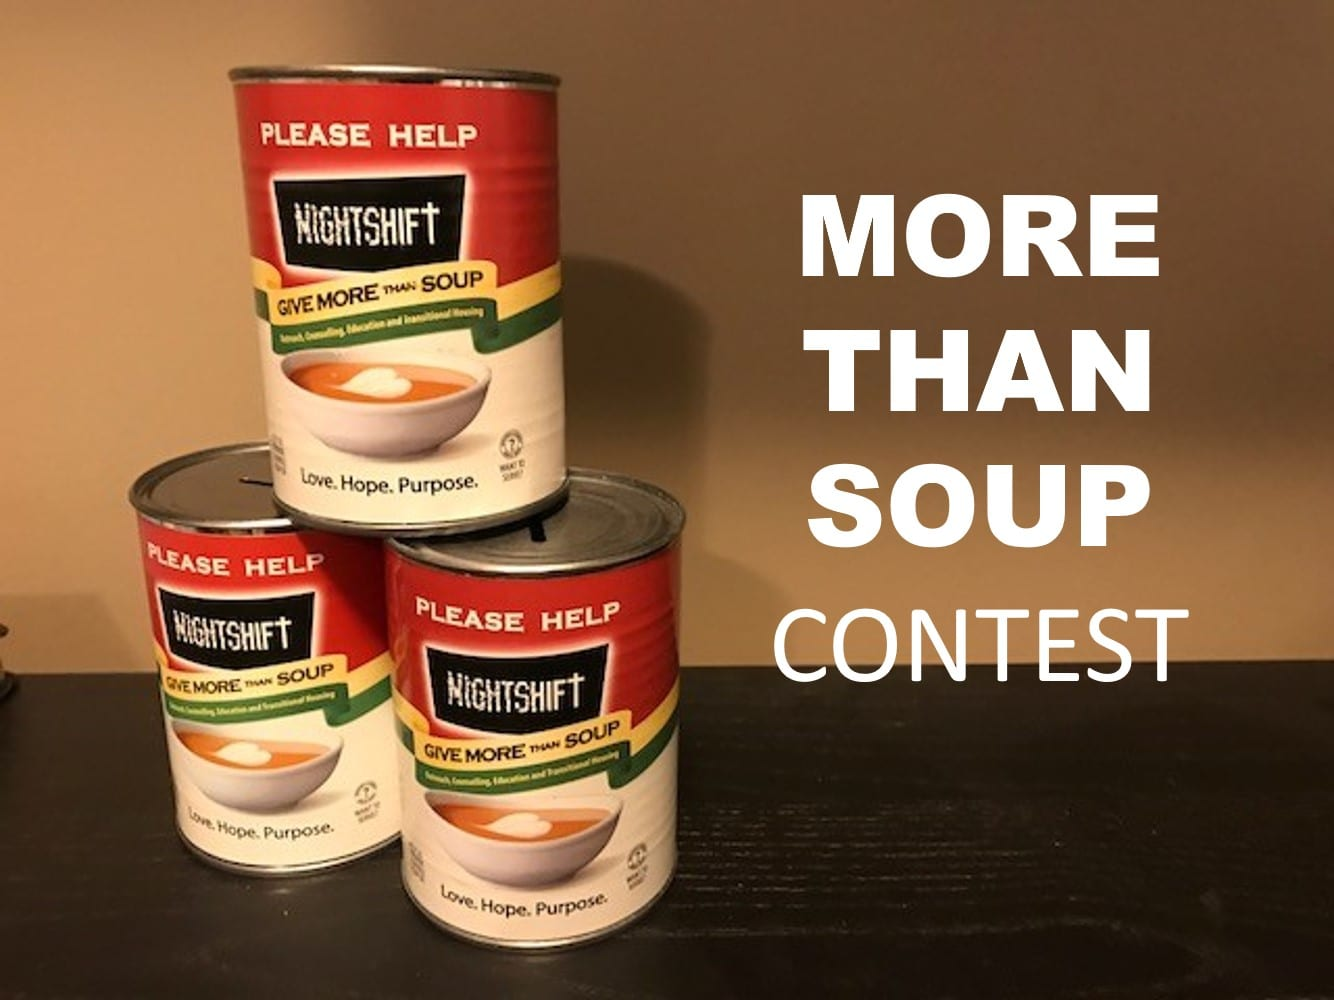 More Than Soup Contest home page